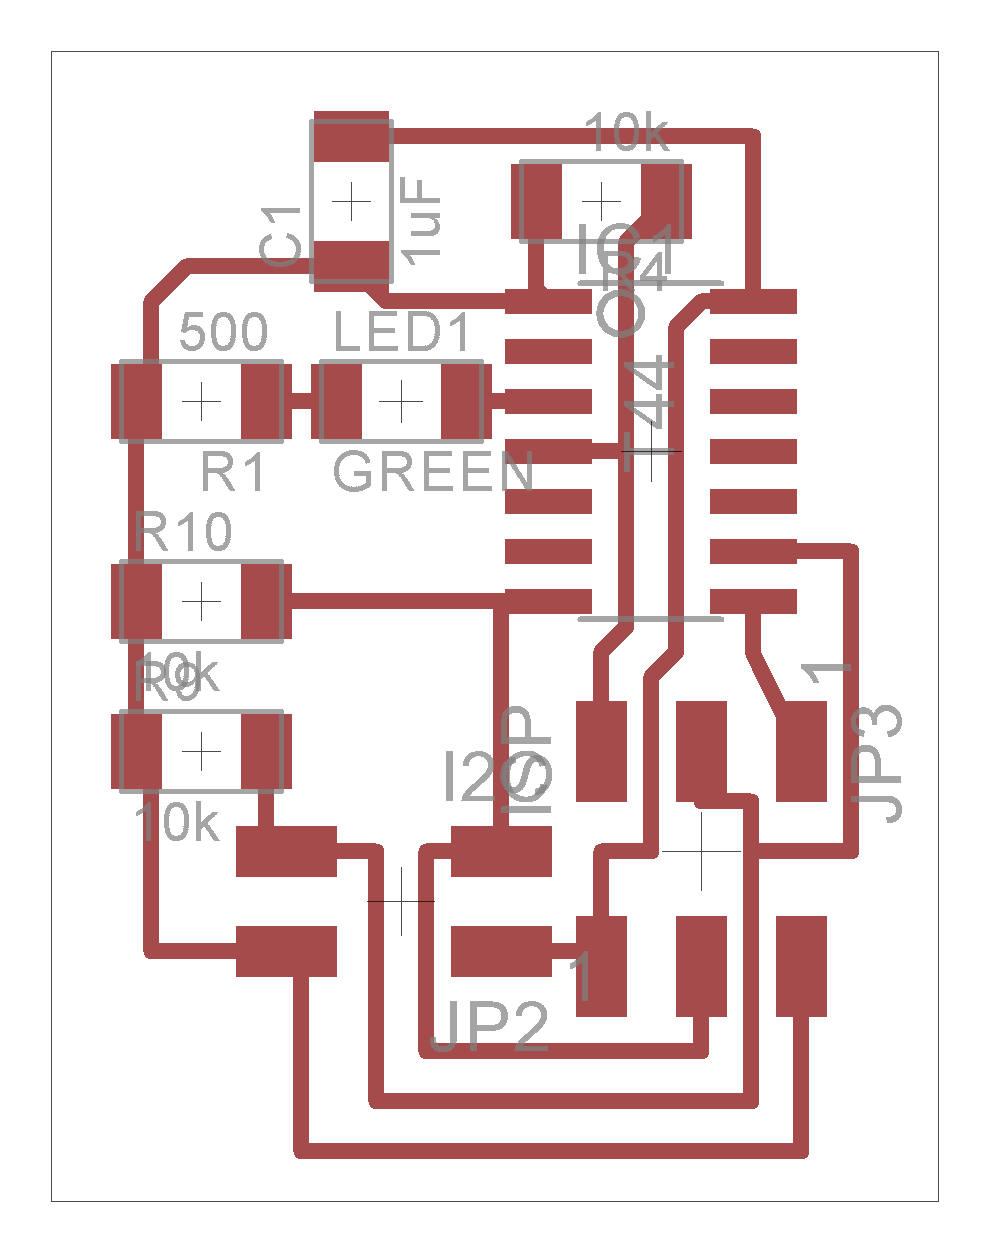 Fab Academy 2015 Frank Vloet As Directed In The Diagram Circuit Requires A Couple Of 1uf Node